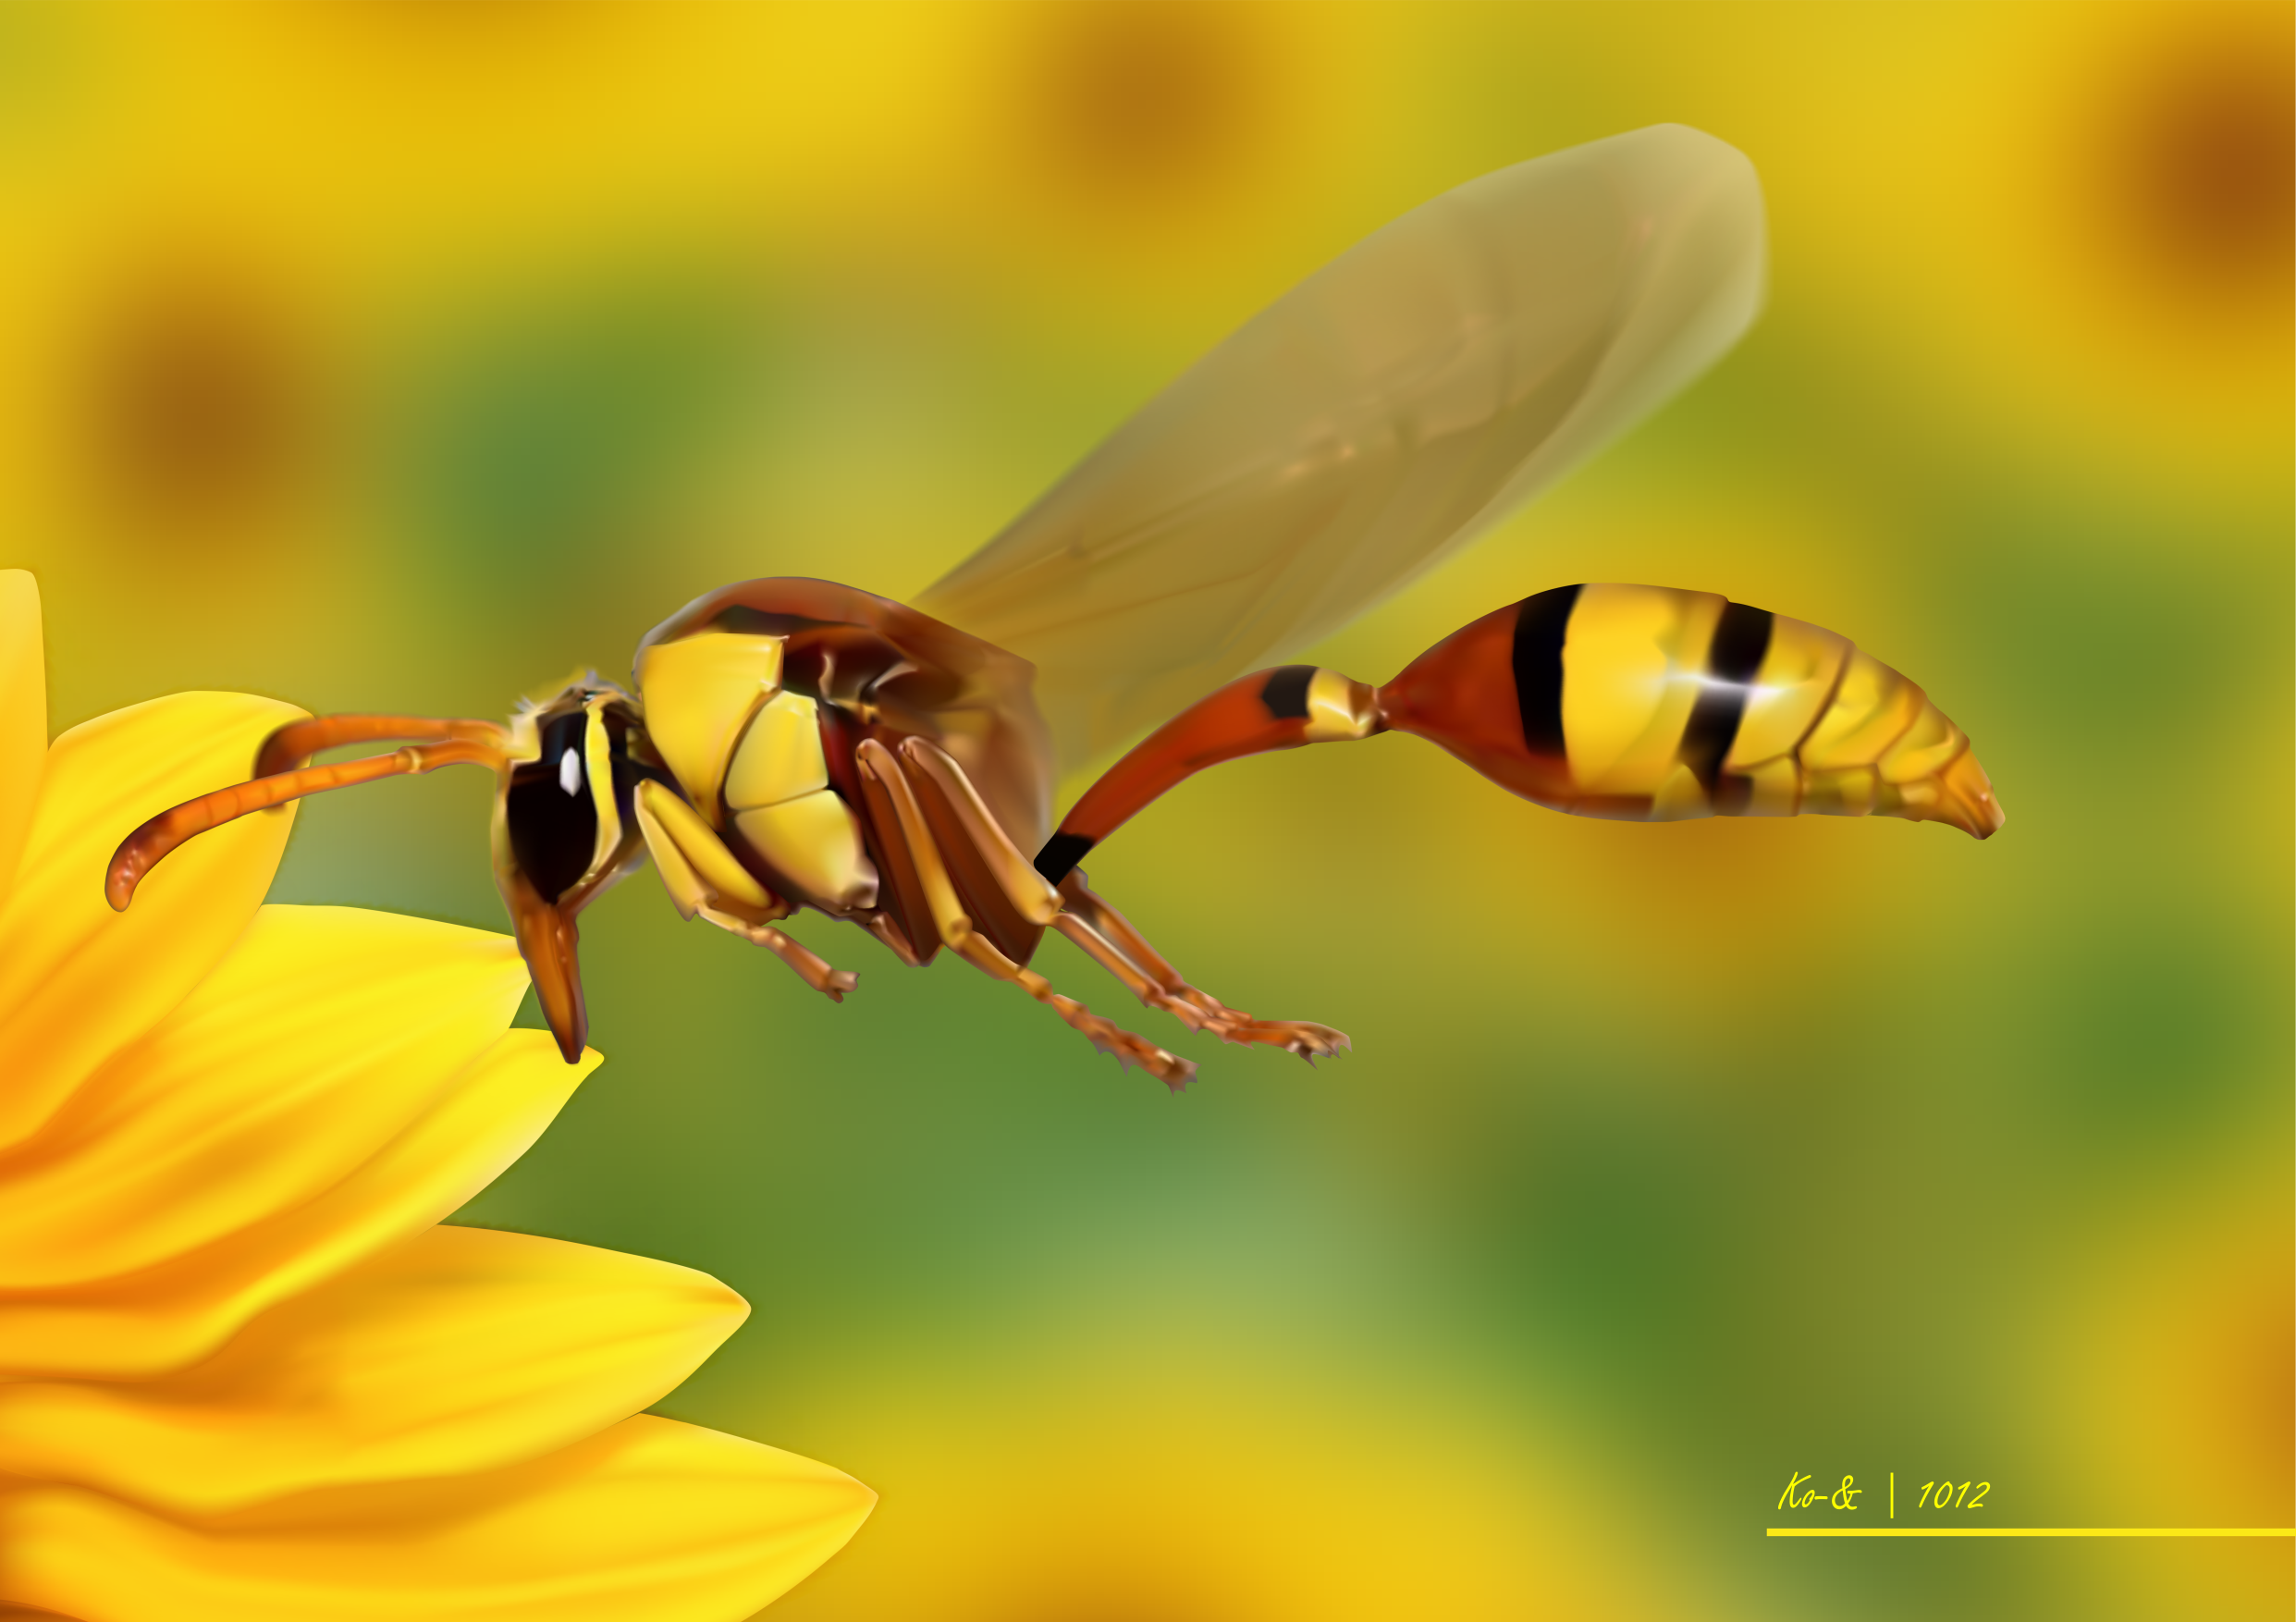 Cute bumble bee pictures